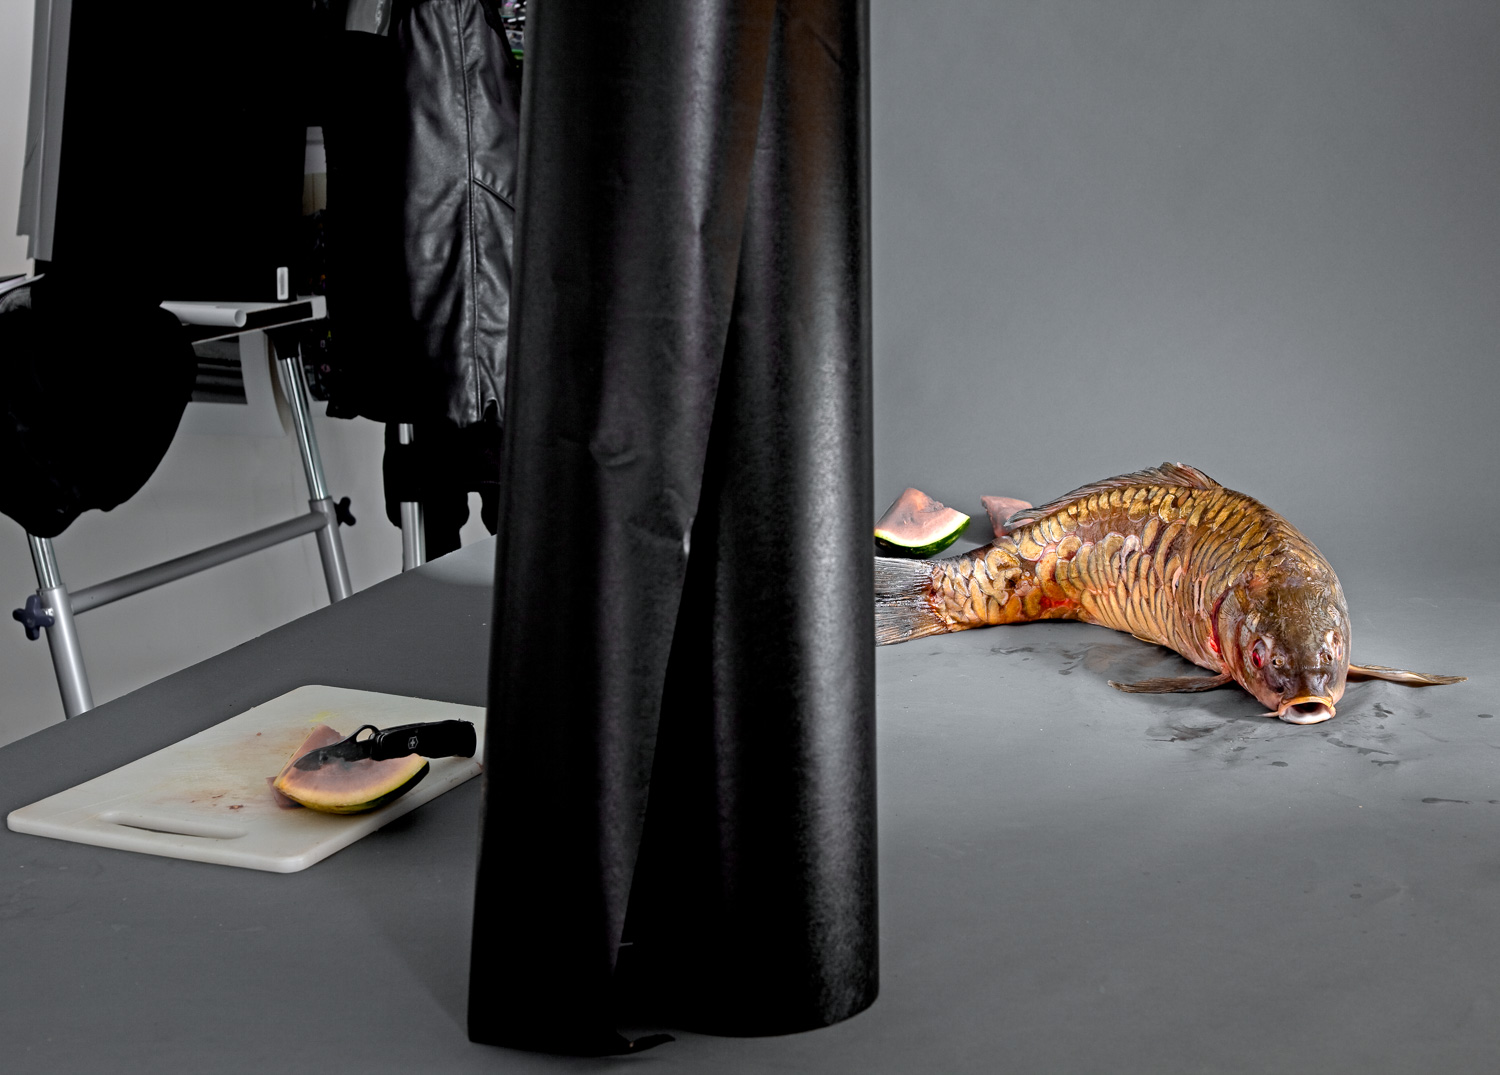 A Carp on my studio table before the final arrangement for a picture.